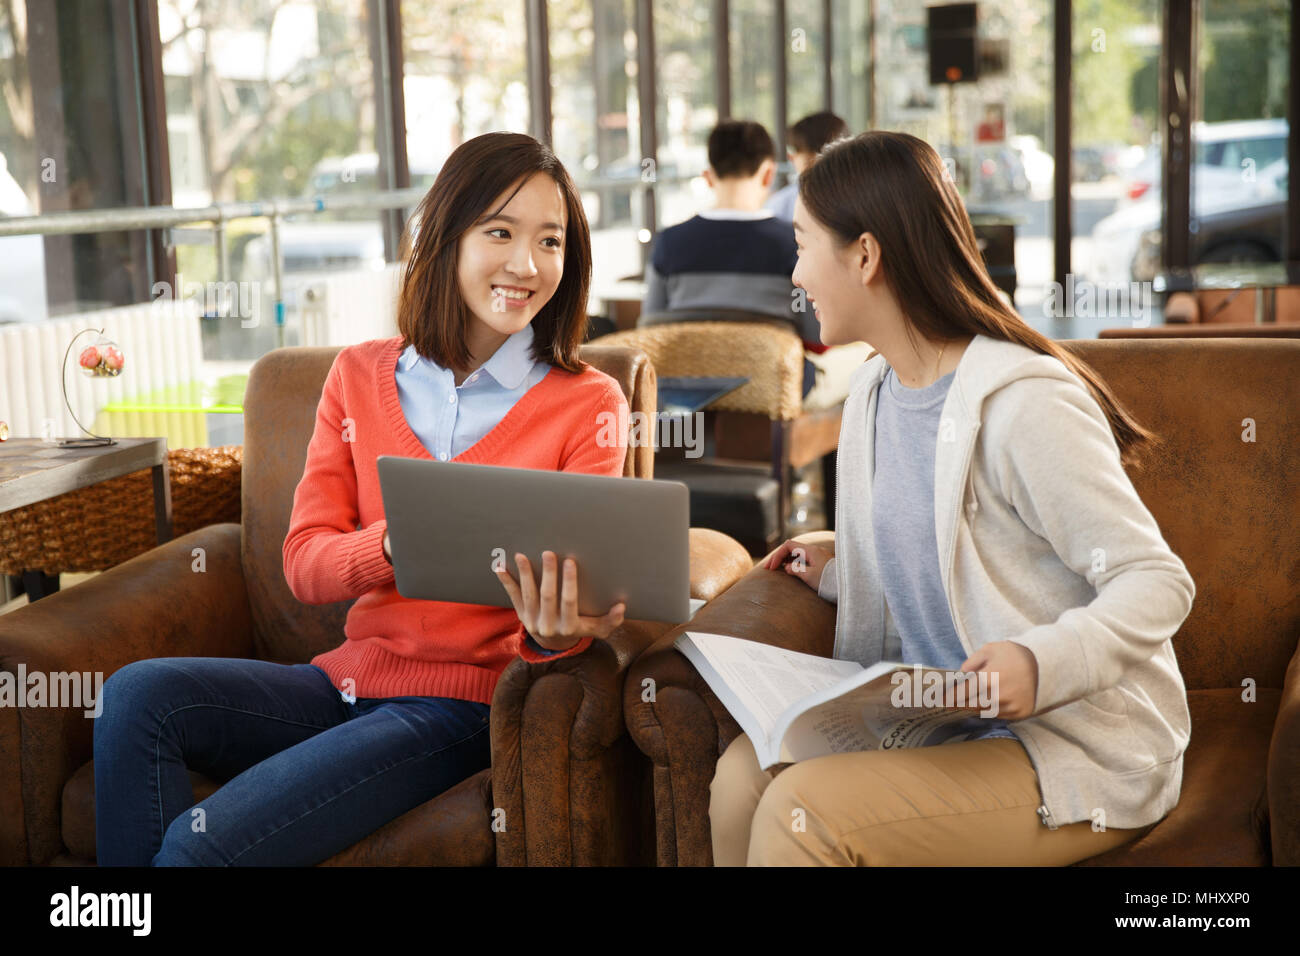 Young women study in coffee shop - Stock Image